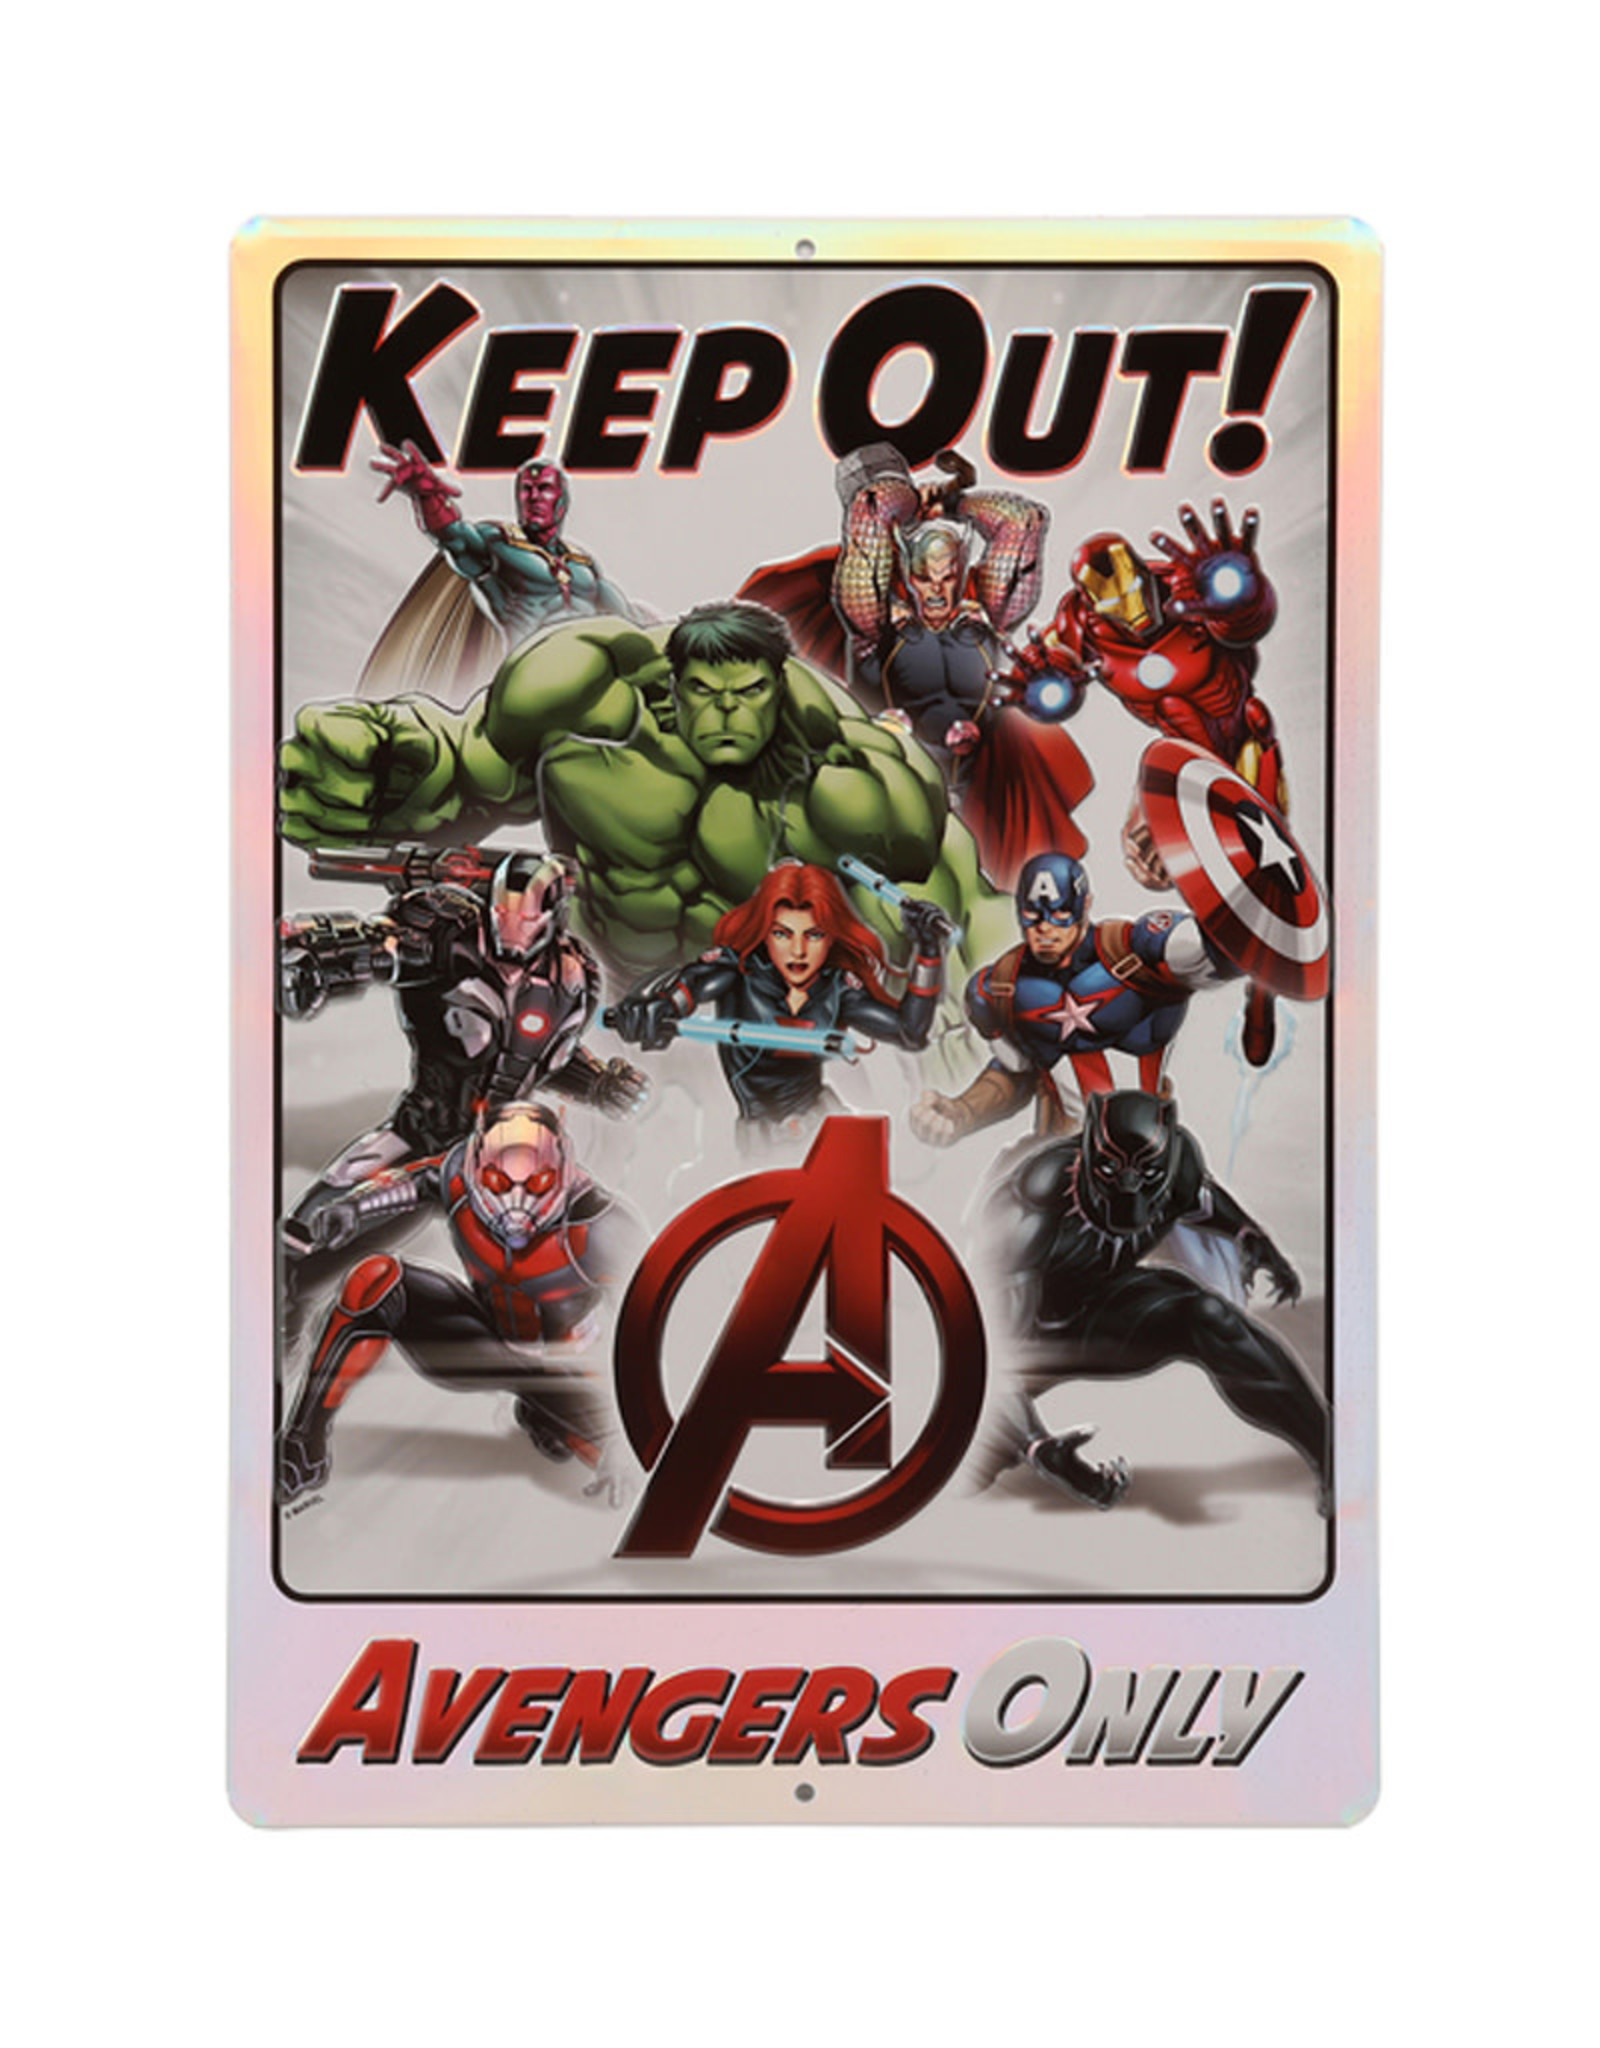 Marvel Marvel ( Embossed Metal Plate ) Avengers only Keep Out